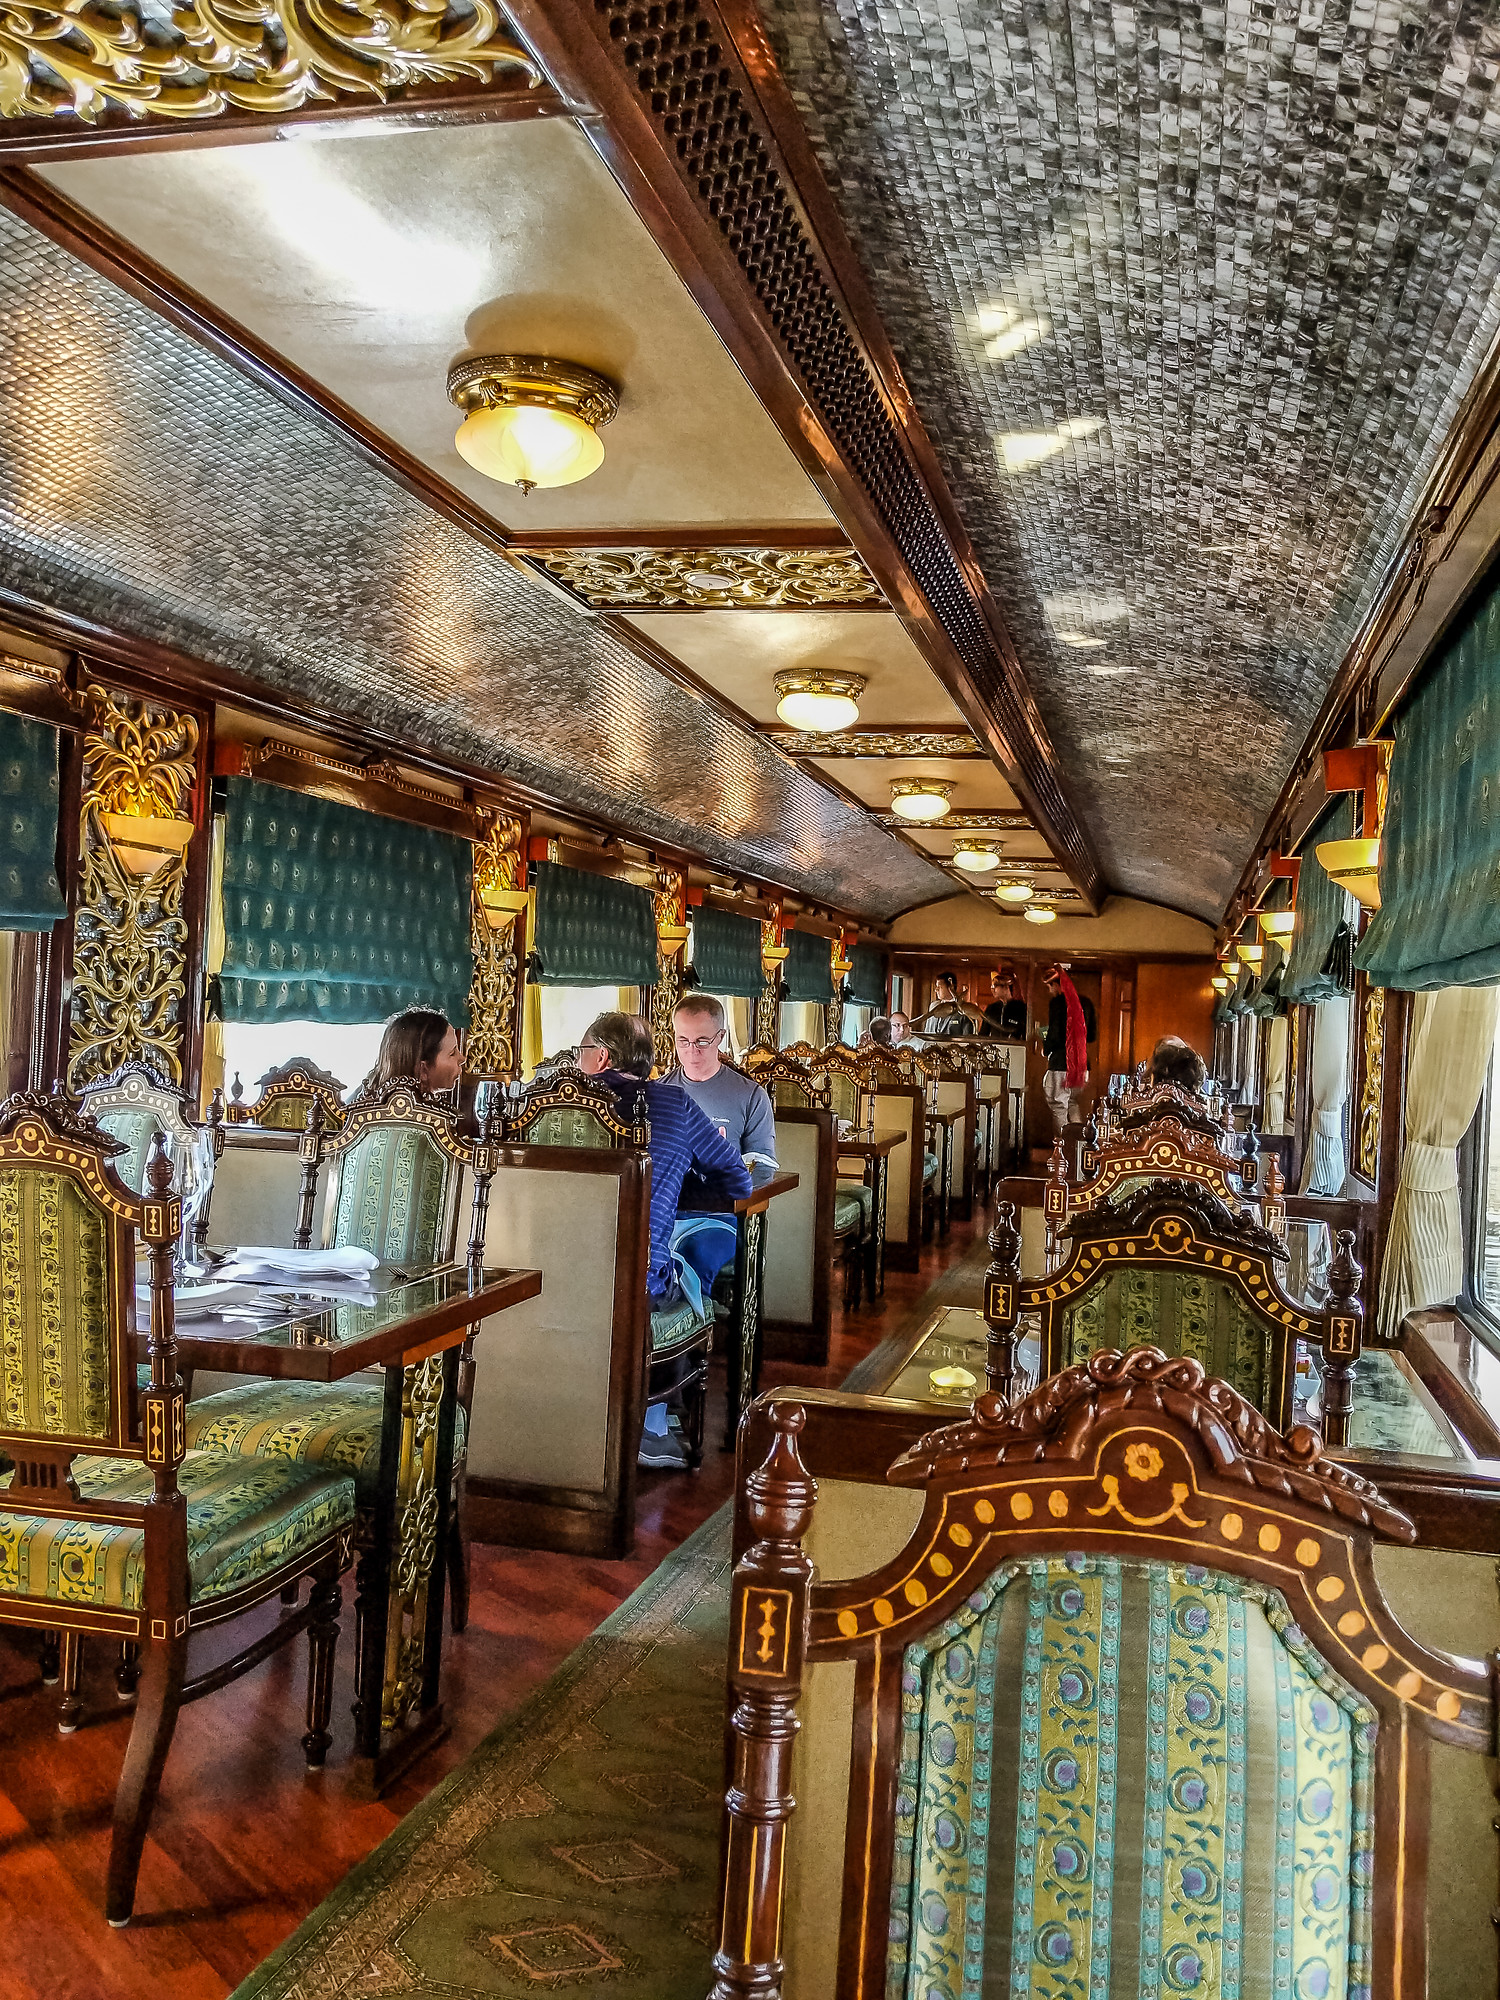 The Maharajas Express is the best luxury train in the world, but is it worth it? An honest review of this luxury train in India with all the details to plan your trip.